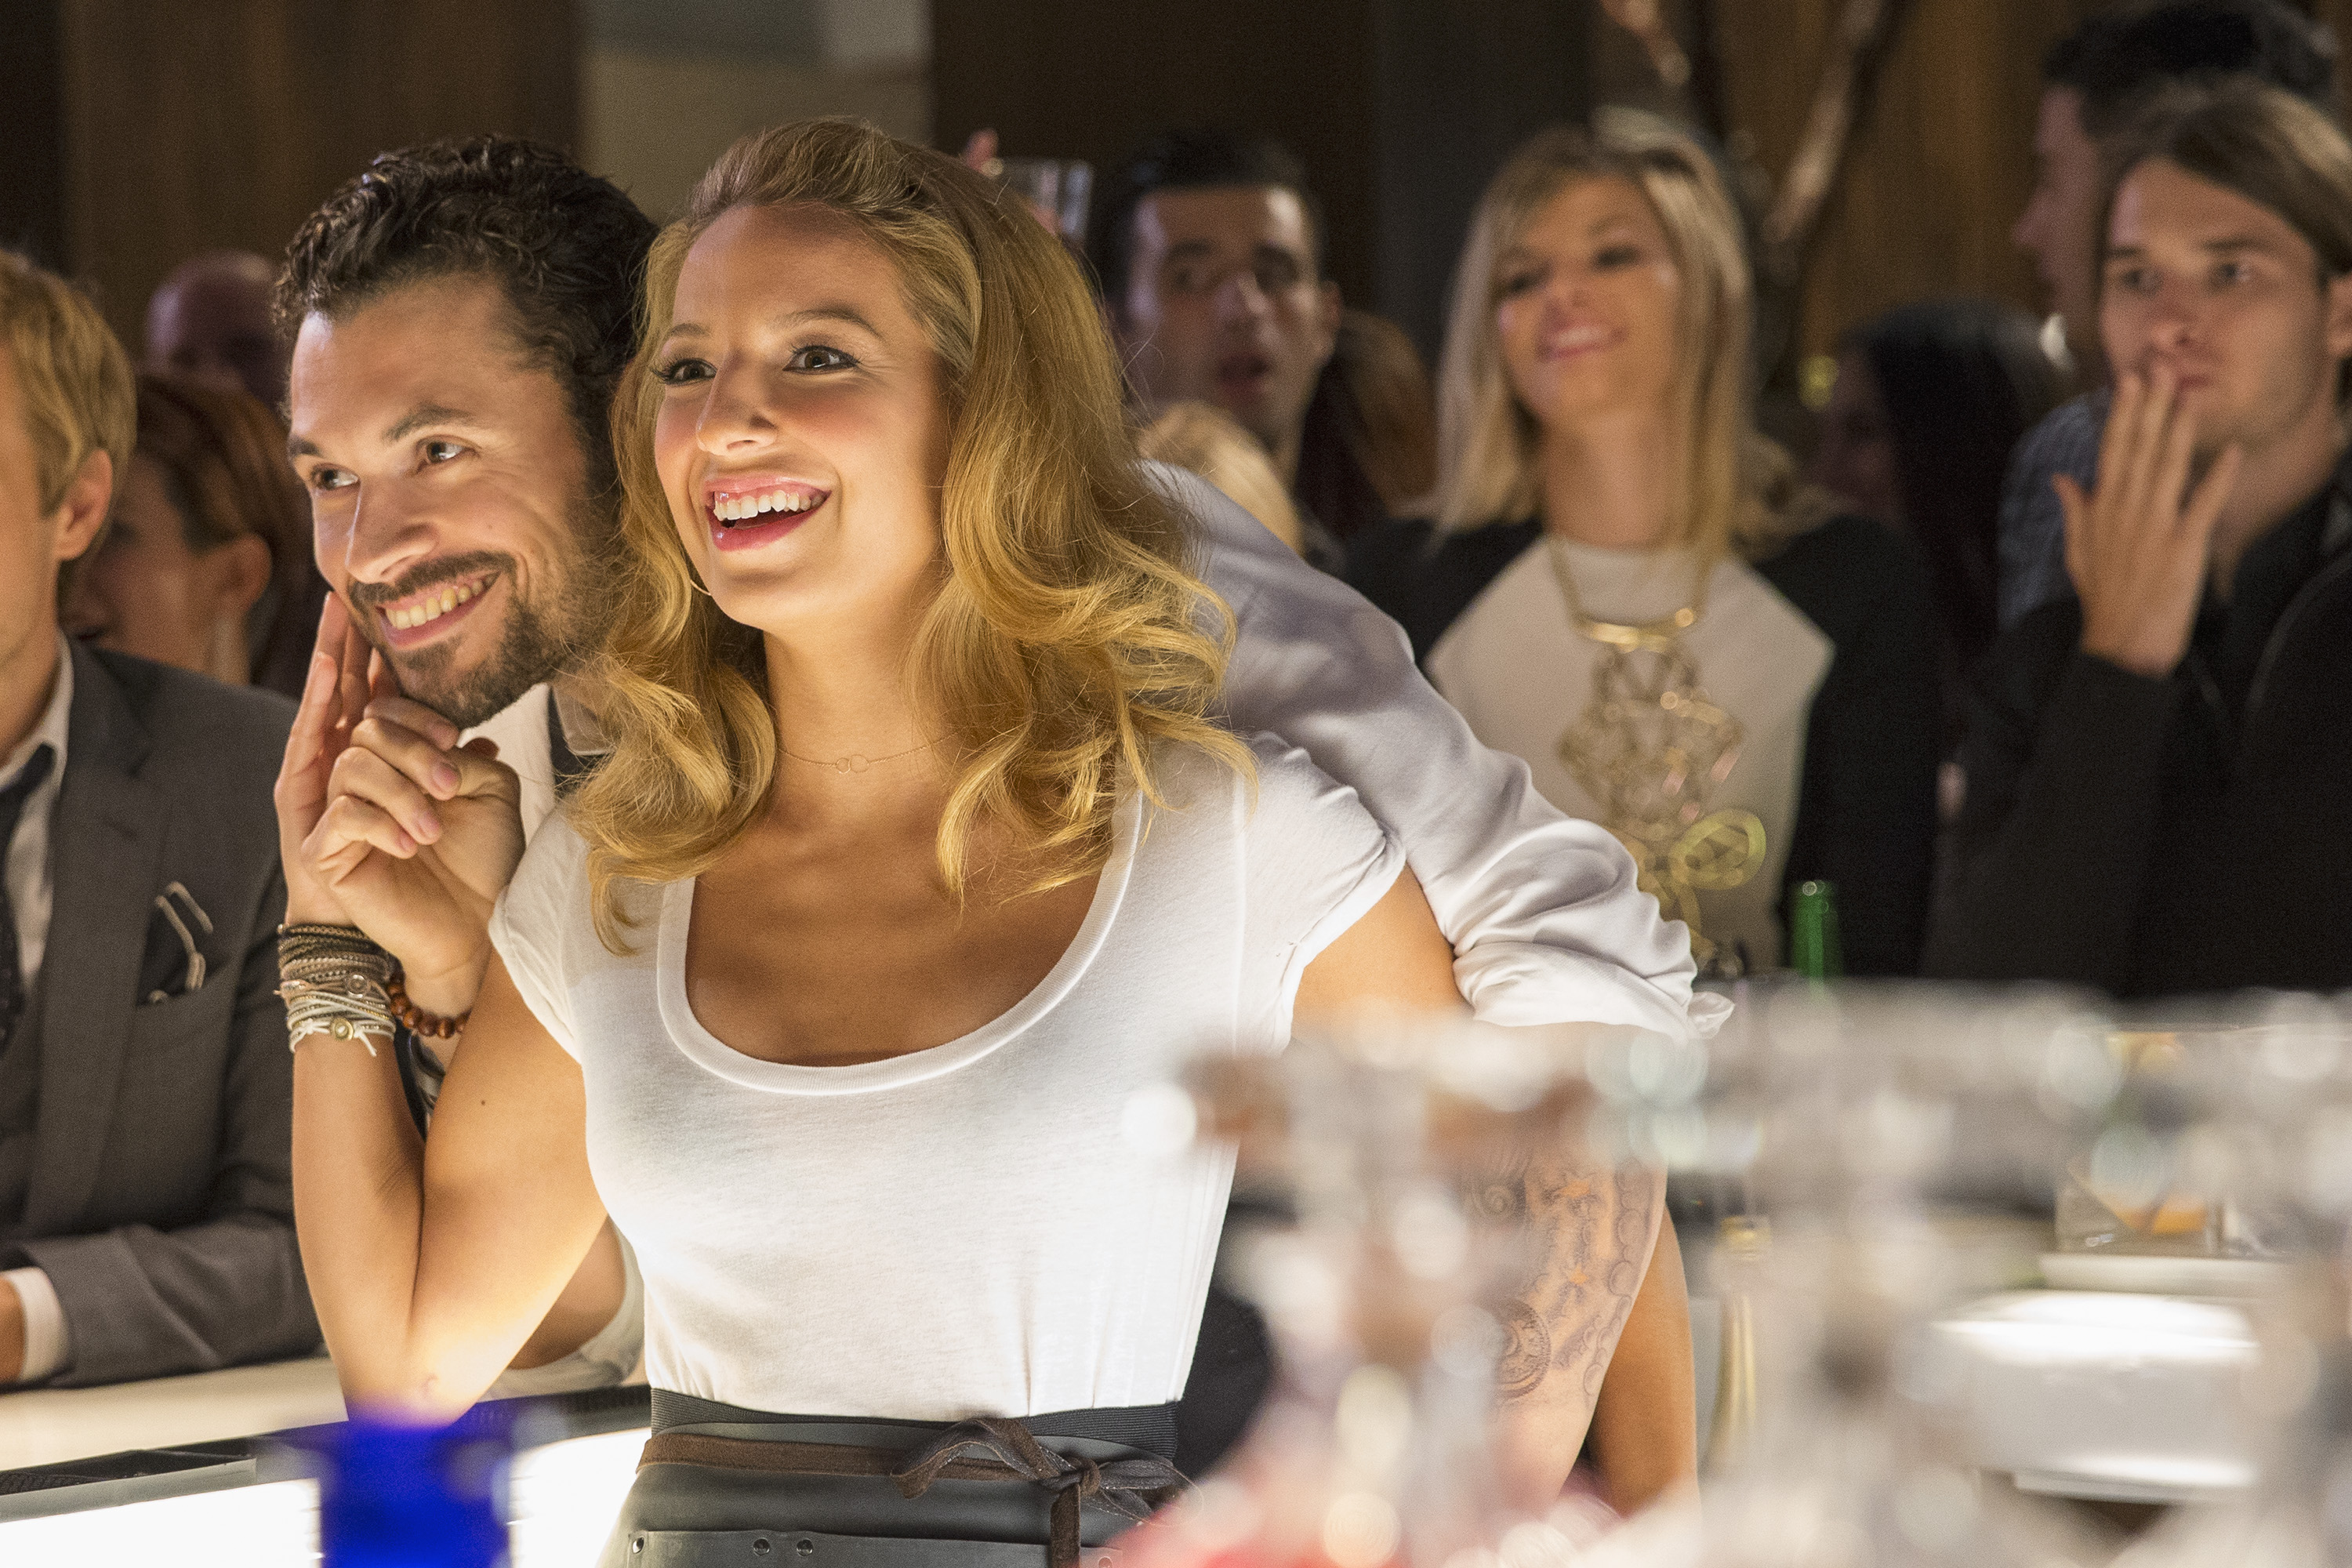 Girls can do the picking up too ;) Dominic (Adan Canto) and Kacey (Vanessa Lengies). - Mixology.